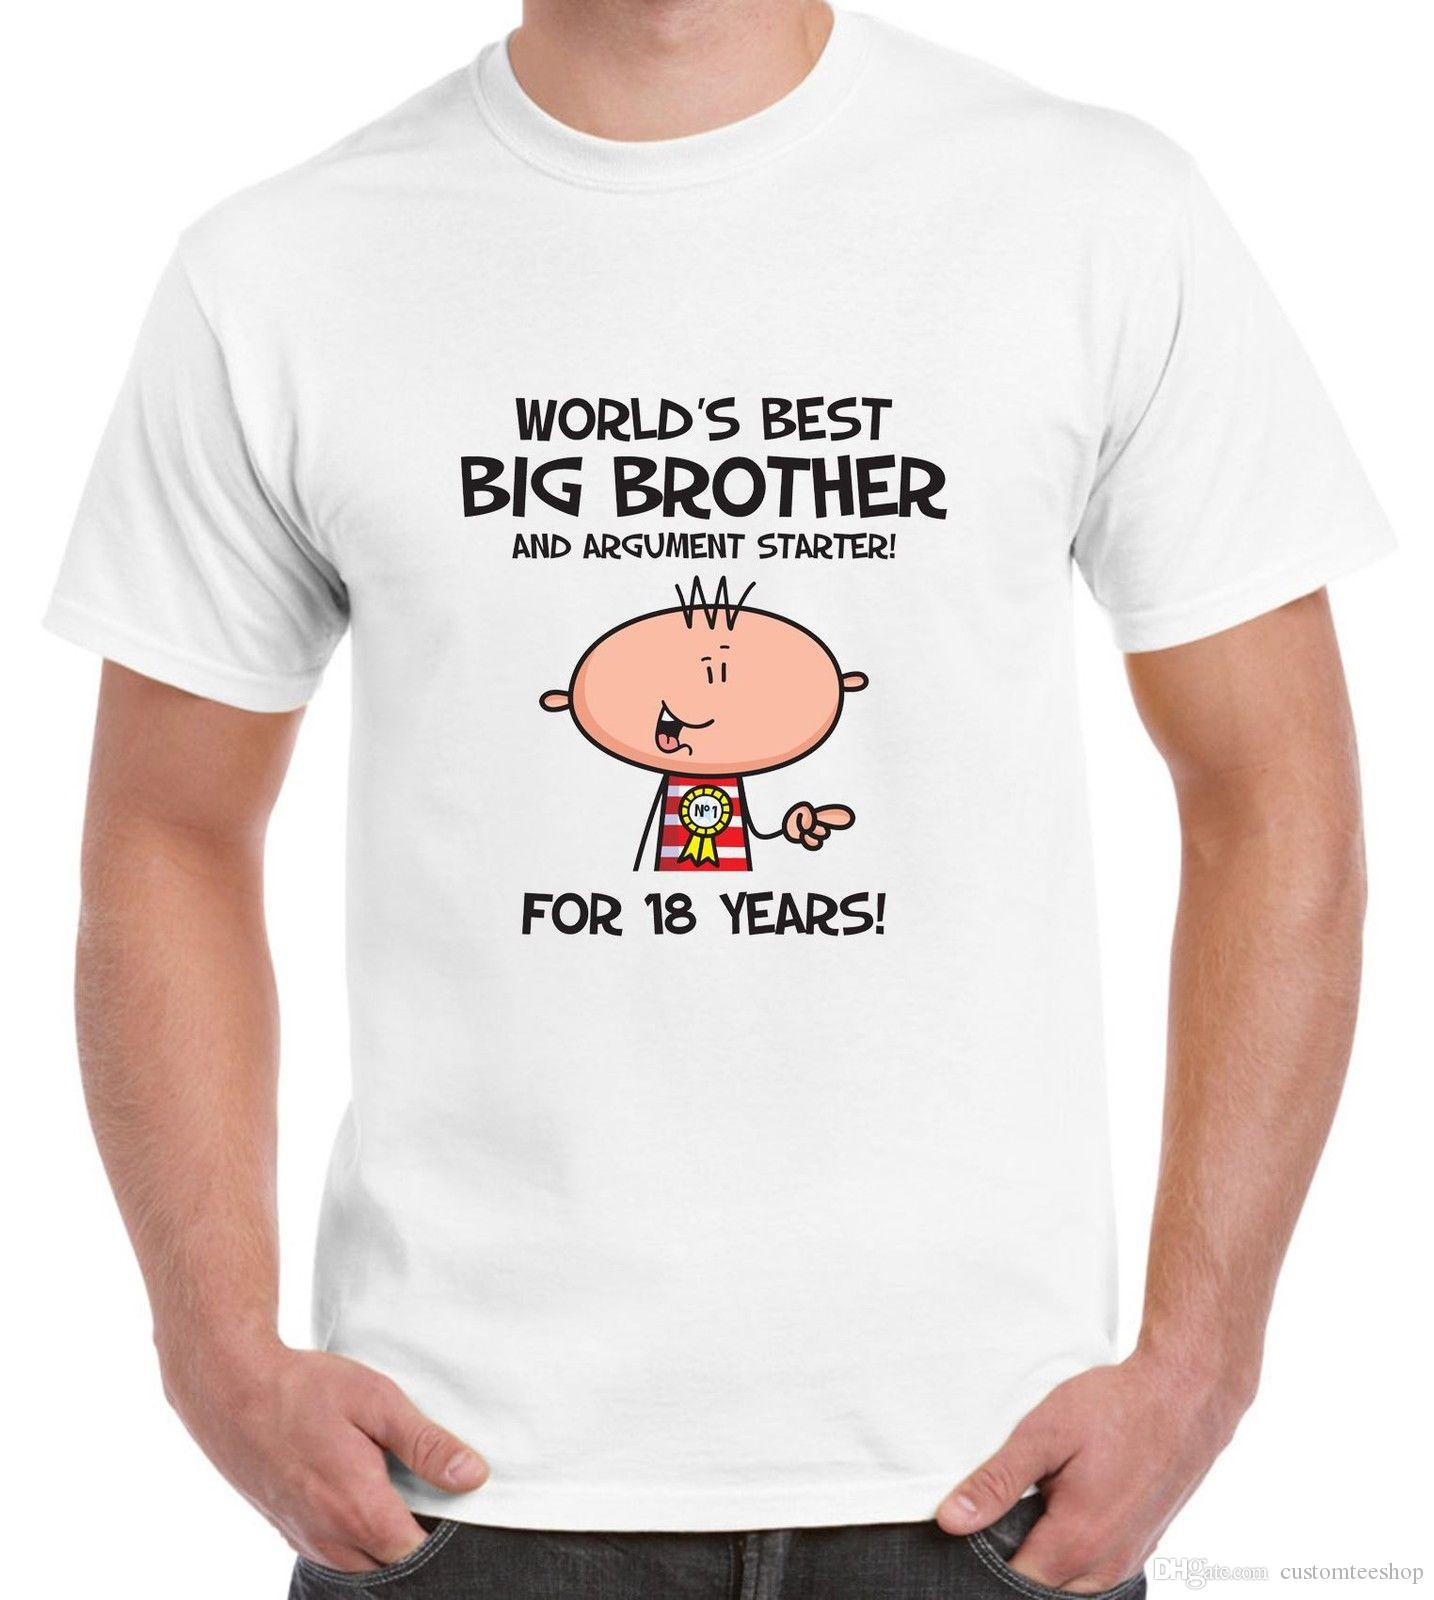 Worlds Best Big Brother MenS 18th Birthday Present T Shirt Gift Top Tee 100 Cotton Humor Men Crewneck Shirts Fashion Print From